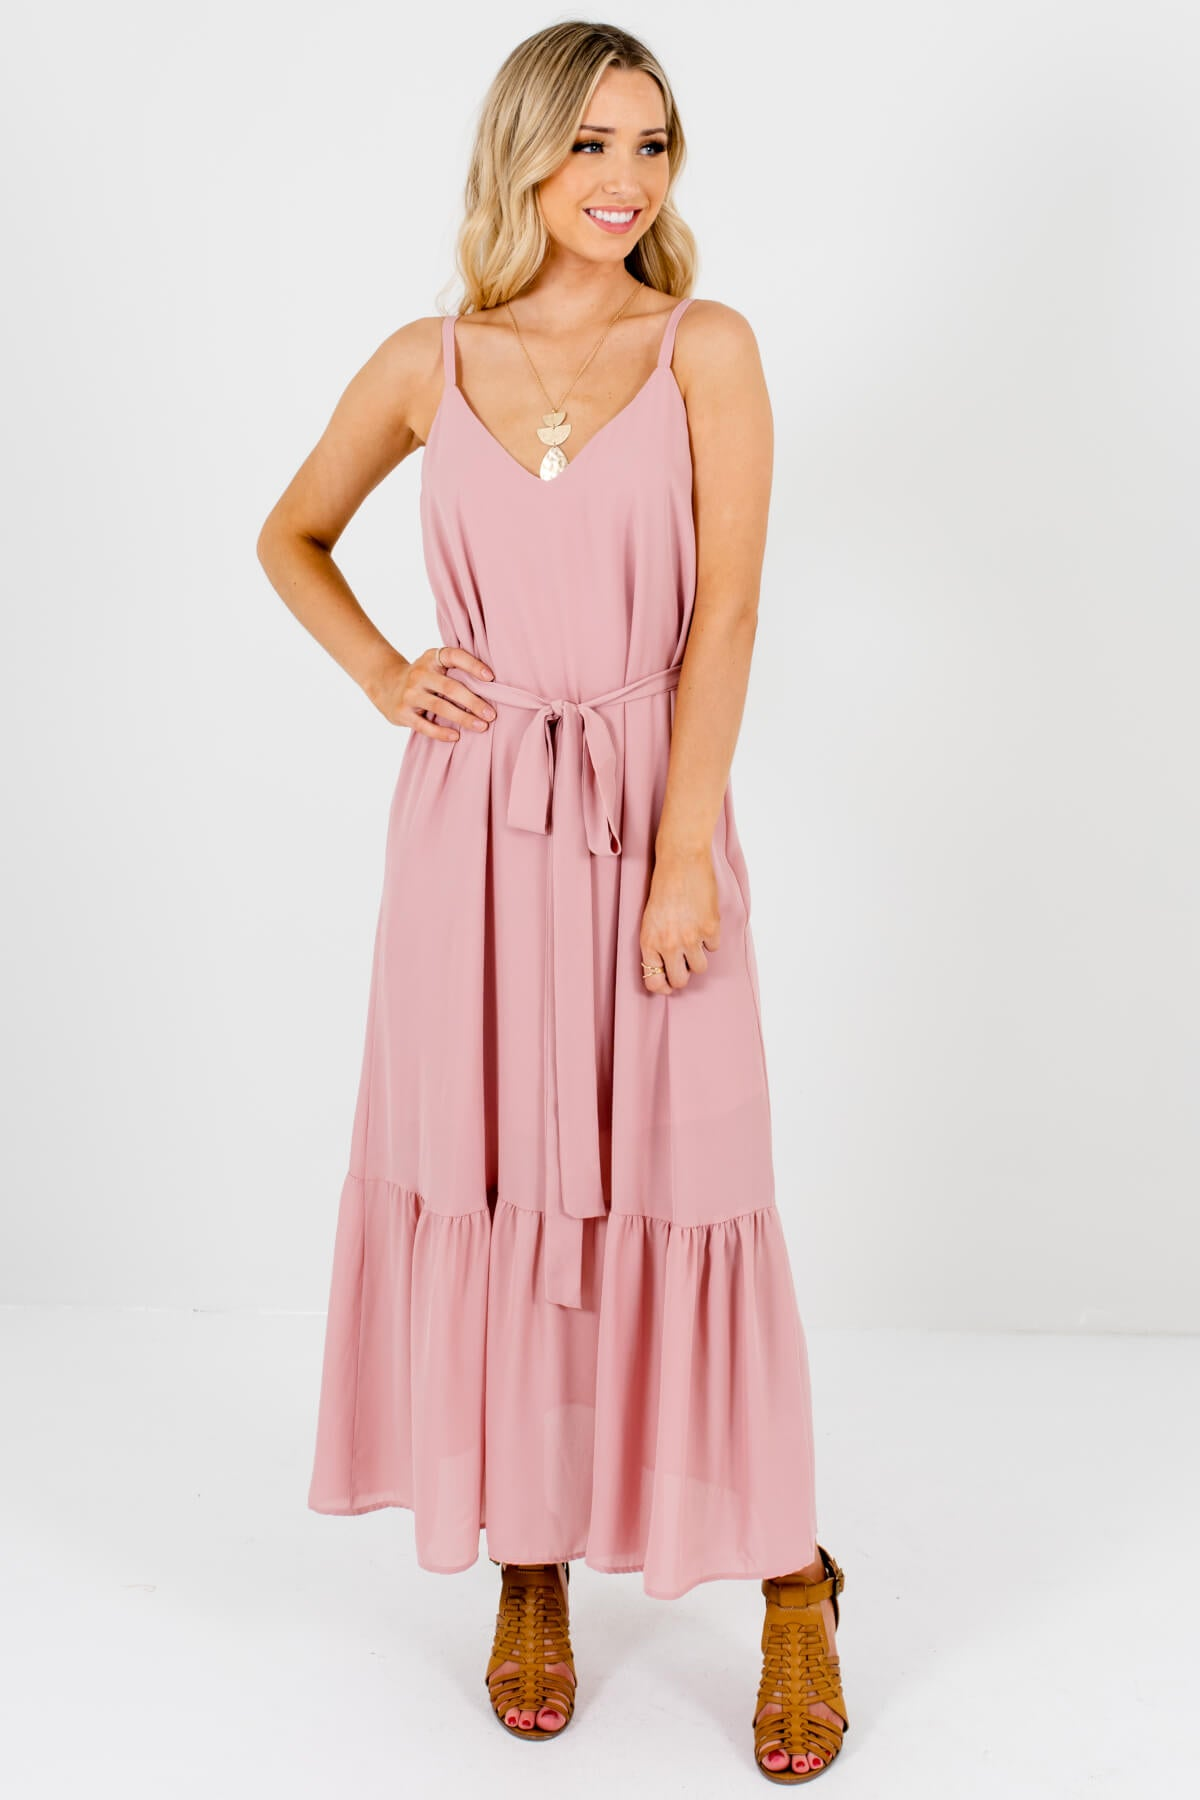 Light Pink Ruffled Hem Boutique Maxi Dresses for Women